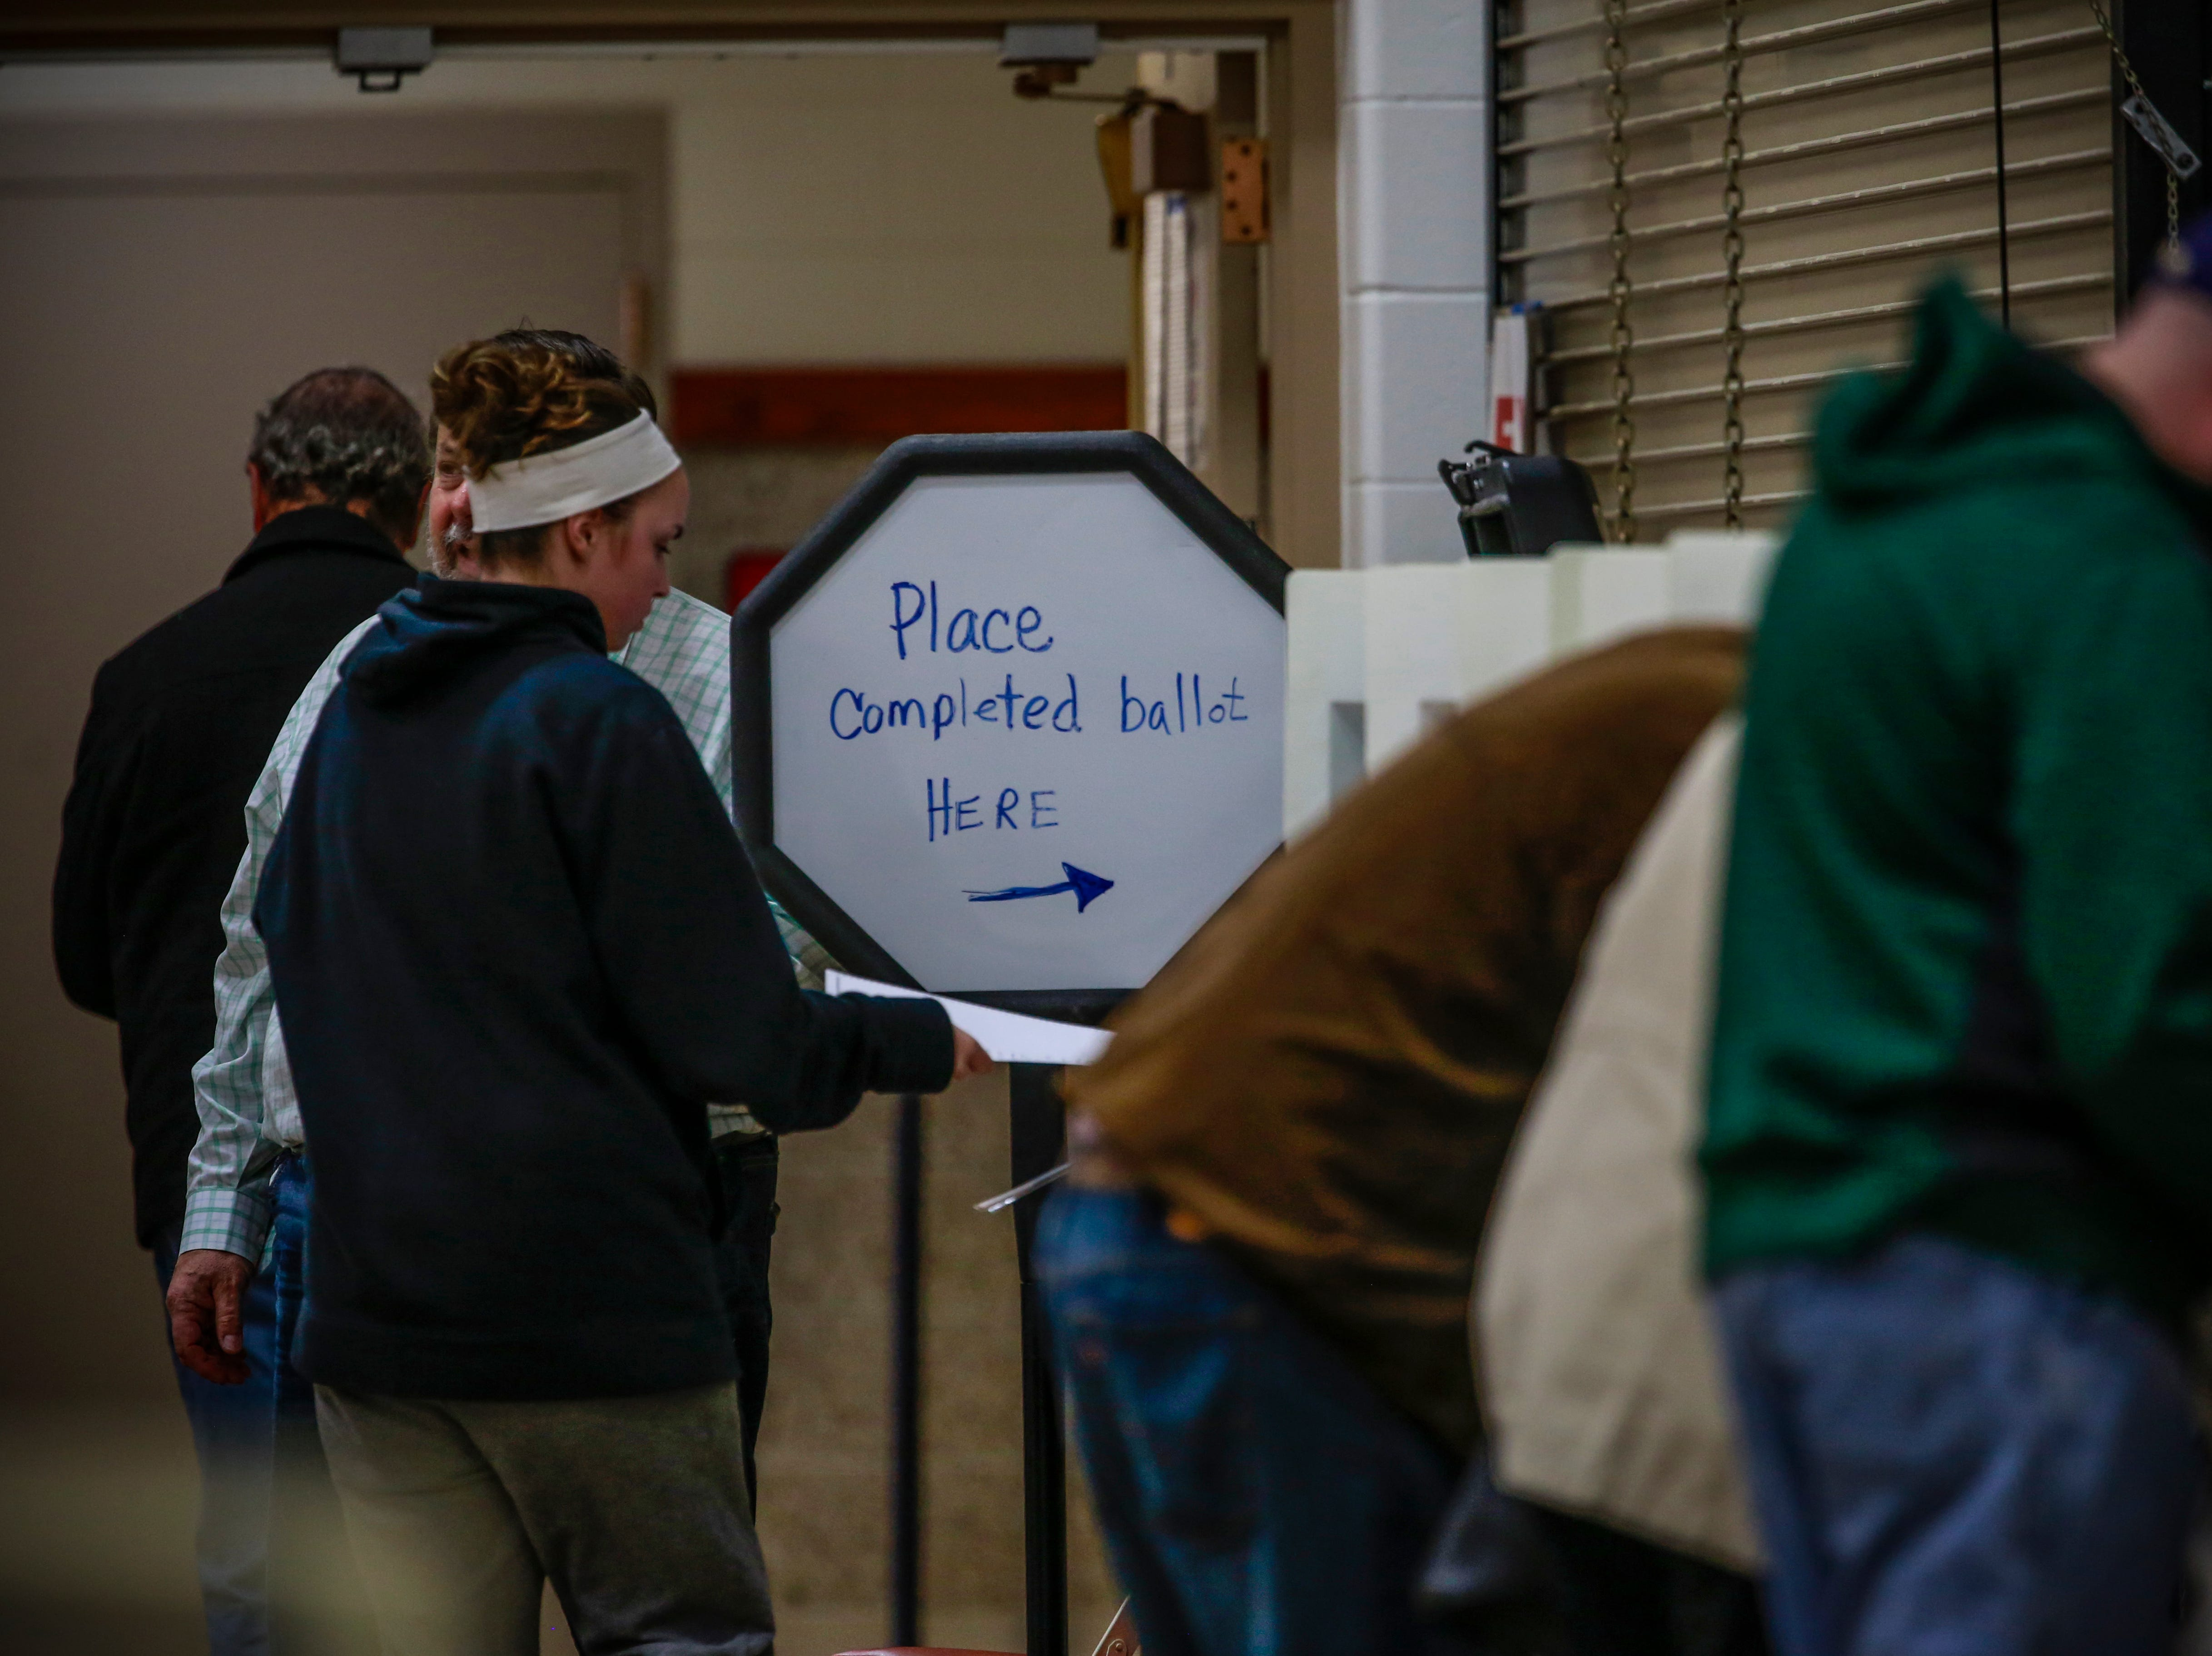 A voter feeds her ballot to a counting machine Tuesday, Nov. 6, 2018, at Wausau East High School gymnasium in Wausau, Wis. T'xer Zhon Kha/USA TODAY NETWORK-Wisconsin